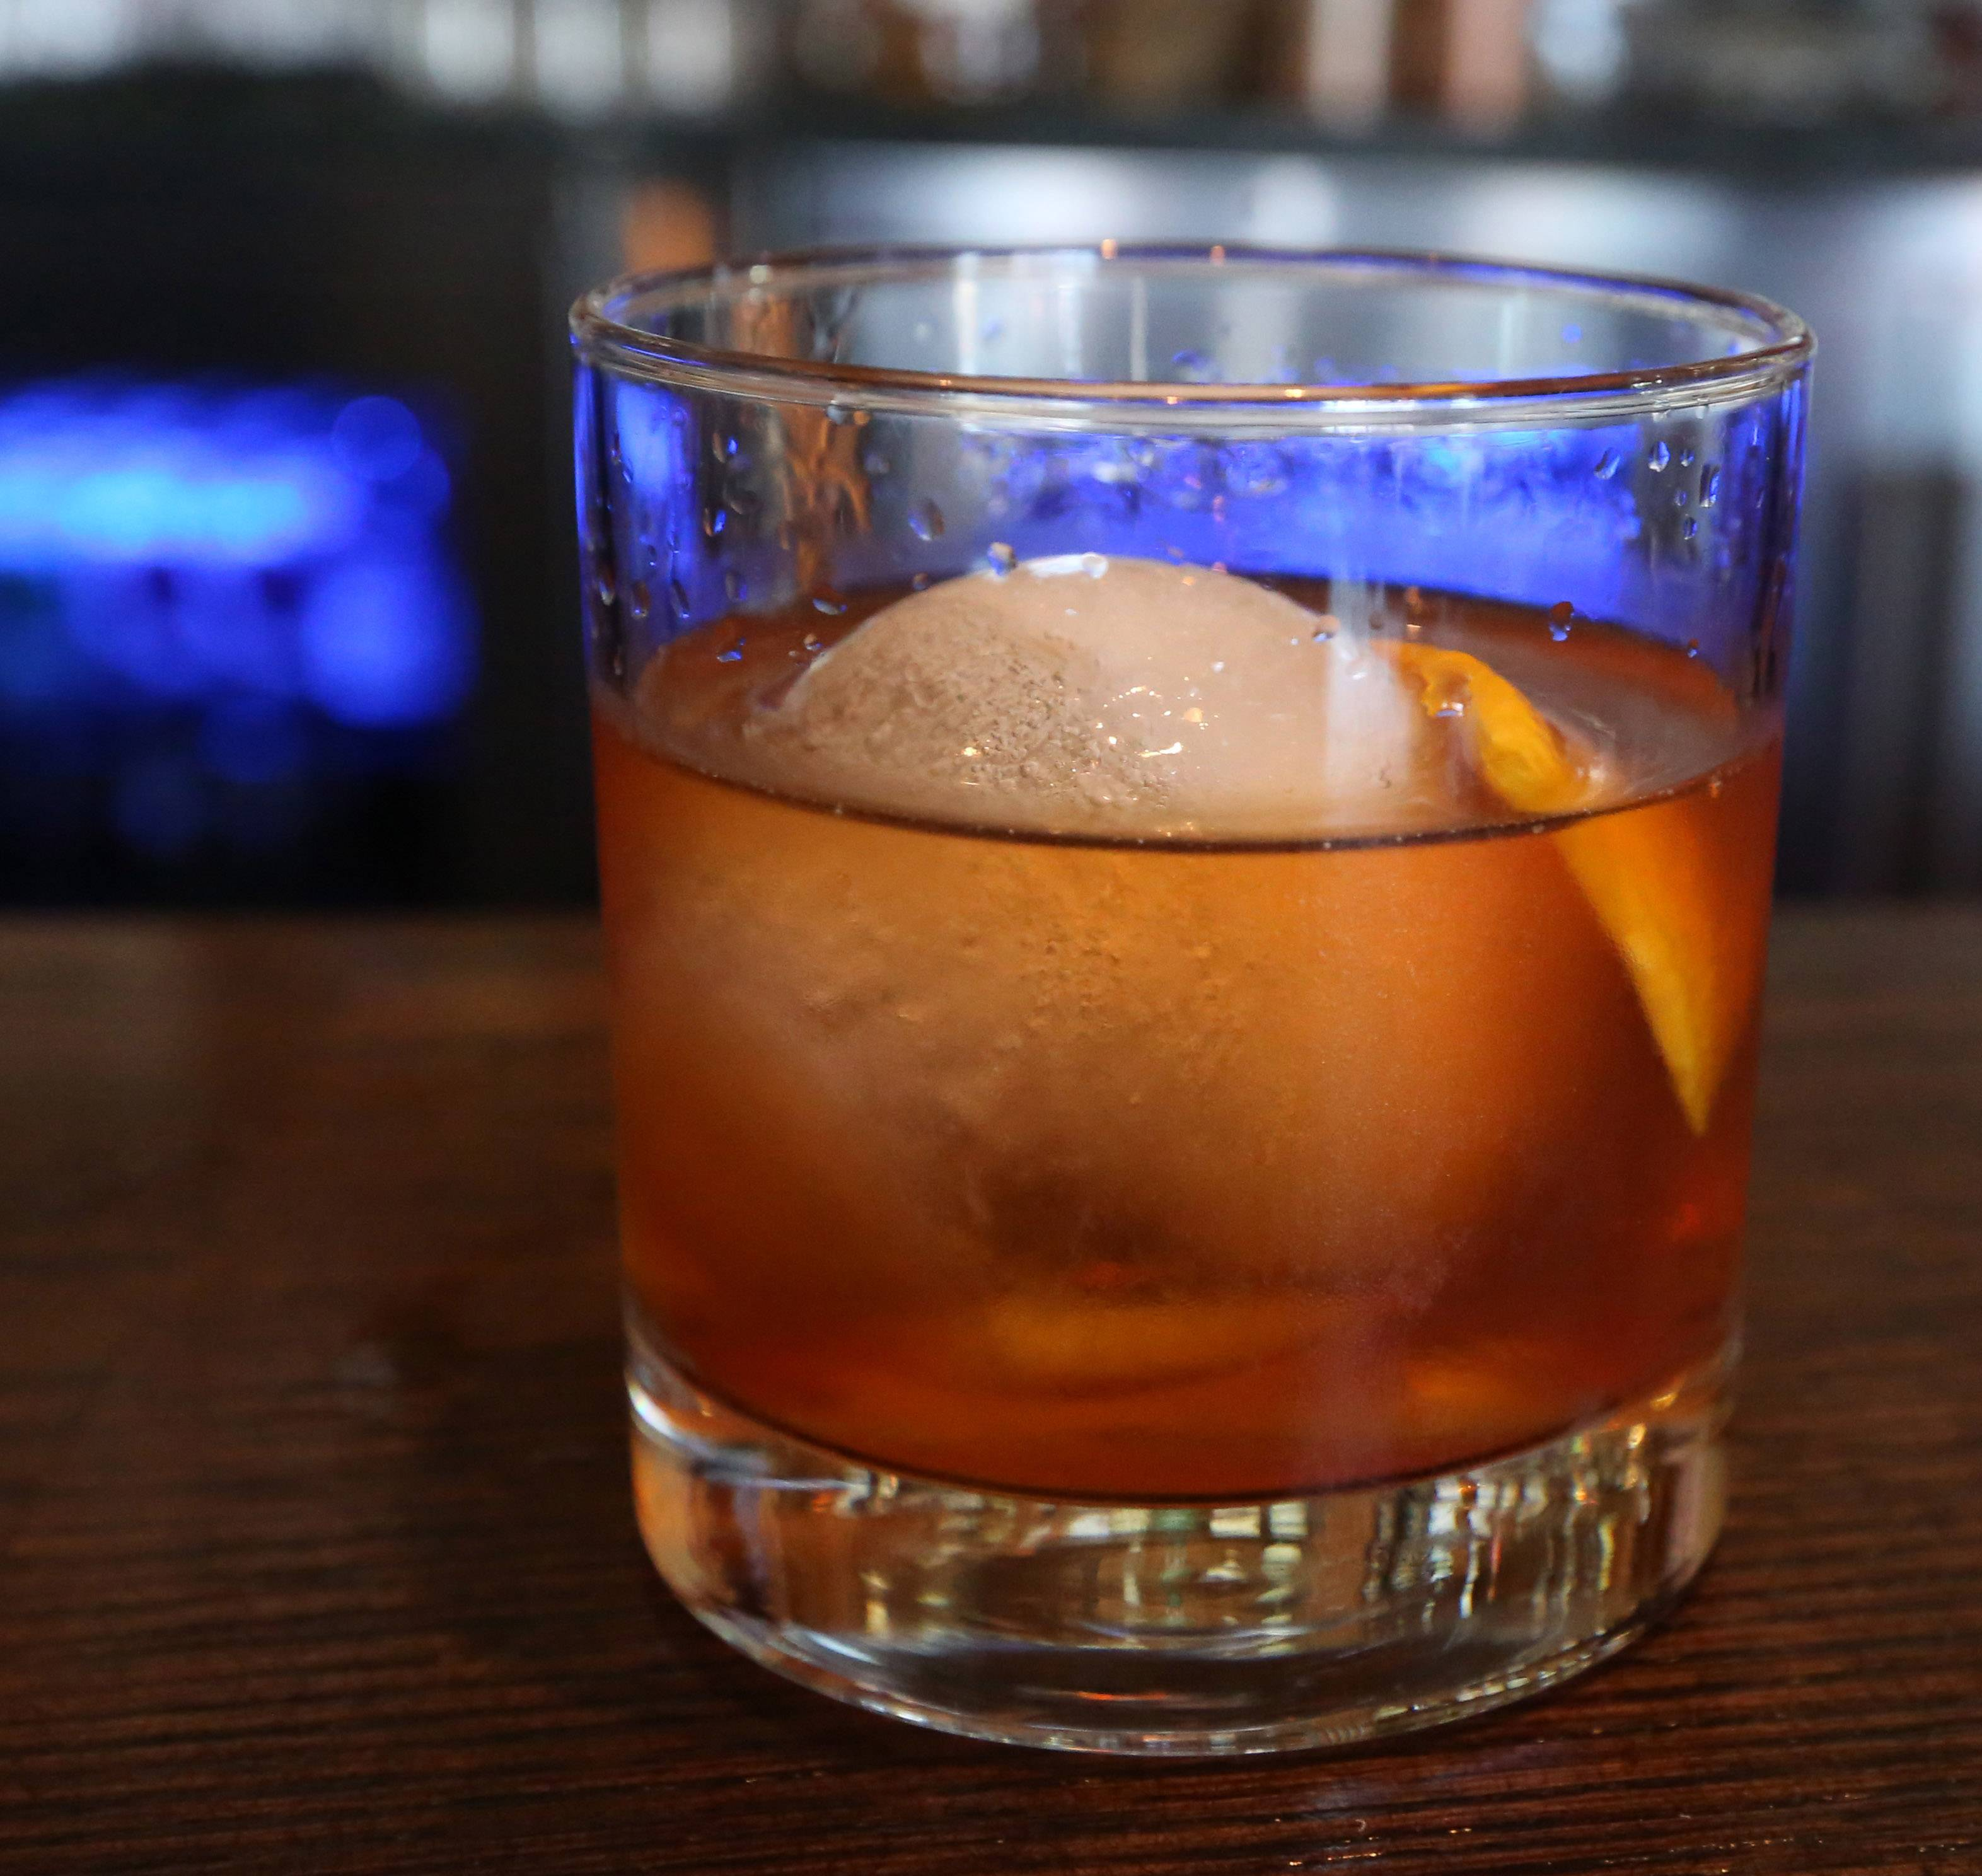 A homemade ball of ice chills an Old Fashion at Spears in Wheeling.